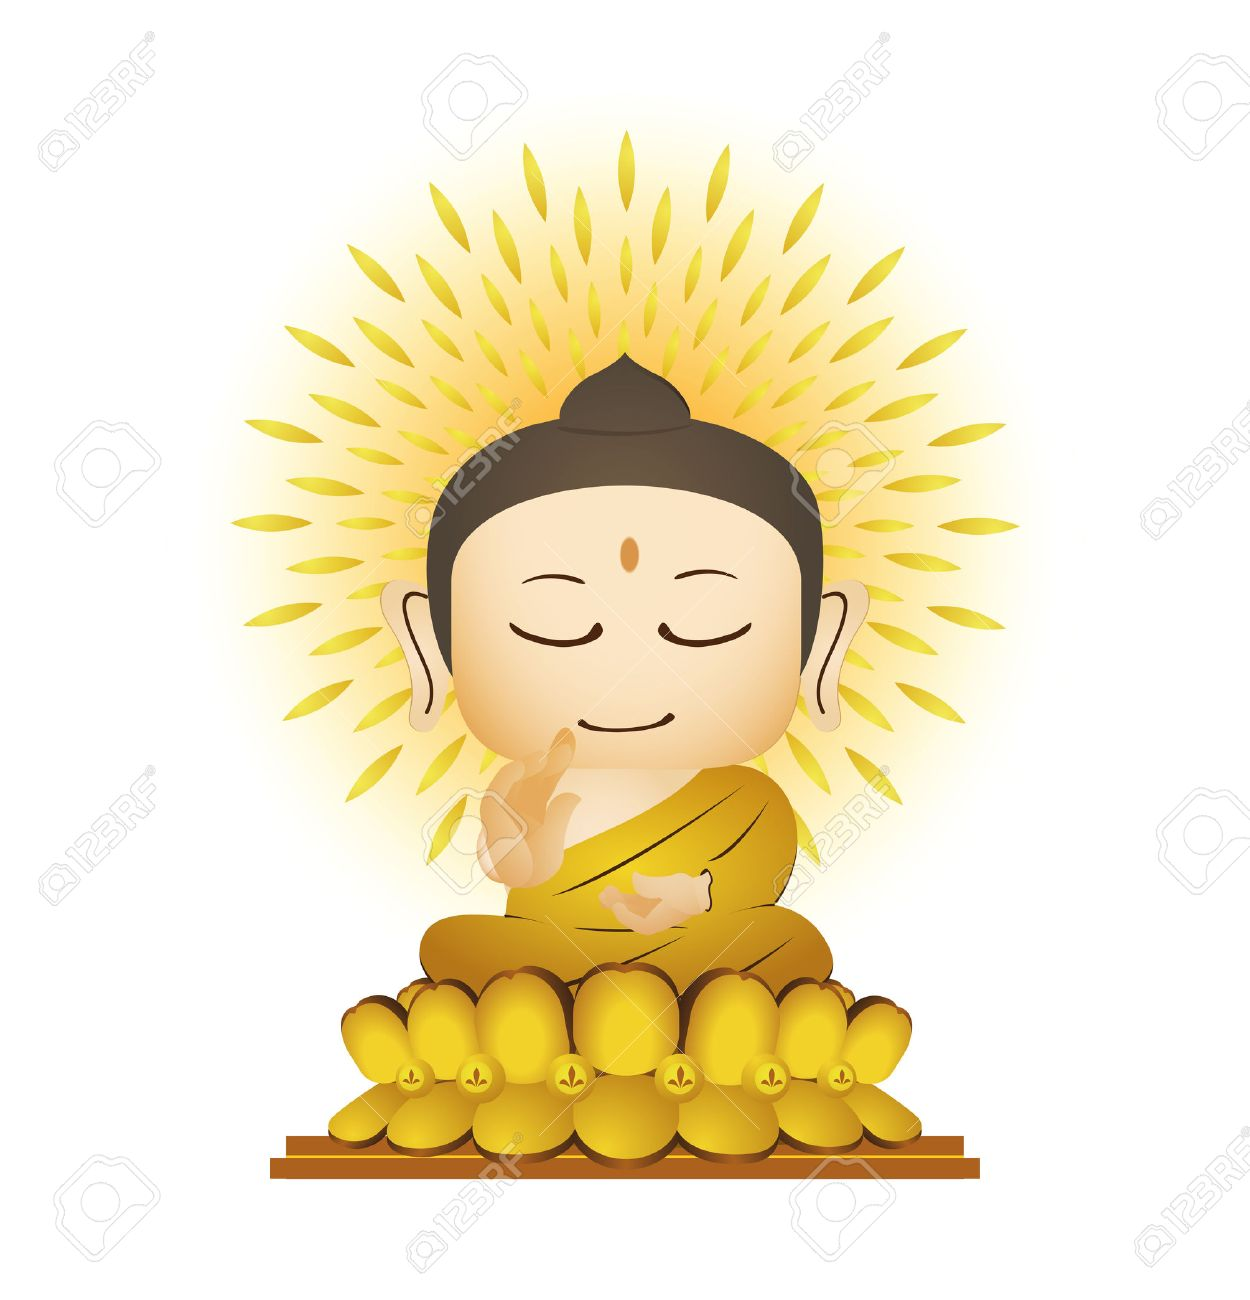 Buddha Cartoon Vector Royalty Free Cliparts, Vectors, And Stock ...